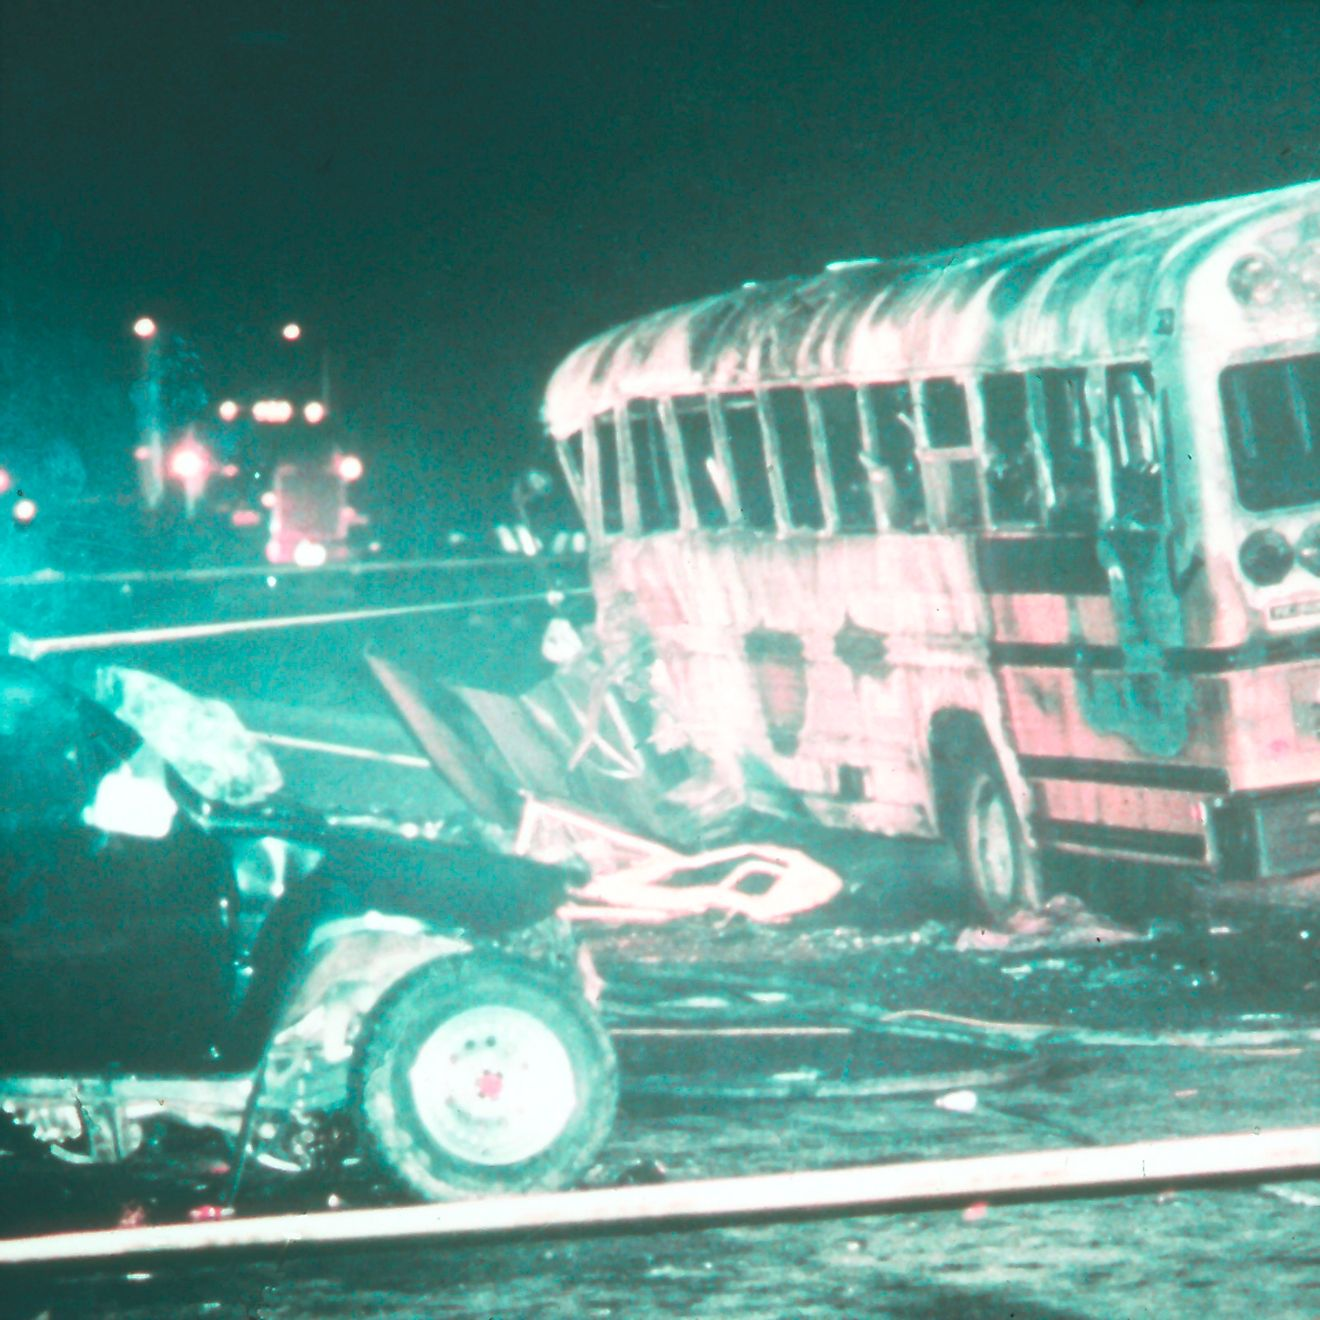 The worst drunk driving accident in U.S. history prompted stricter drinking and driving laws. Twenty-seven students and parents died in this firey crash in 1988, caused by a drunk driver. Image credit: National Transportation Safety Scheme/Flickr.com